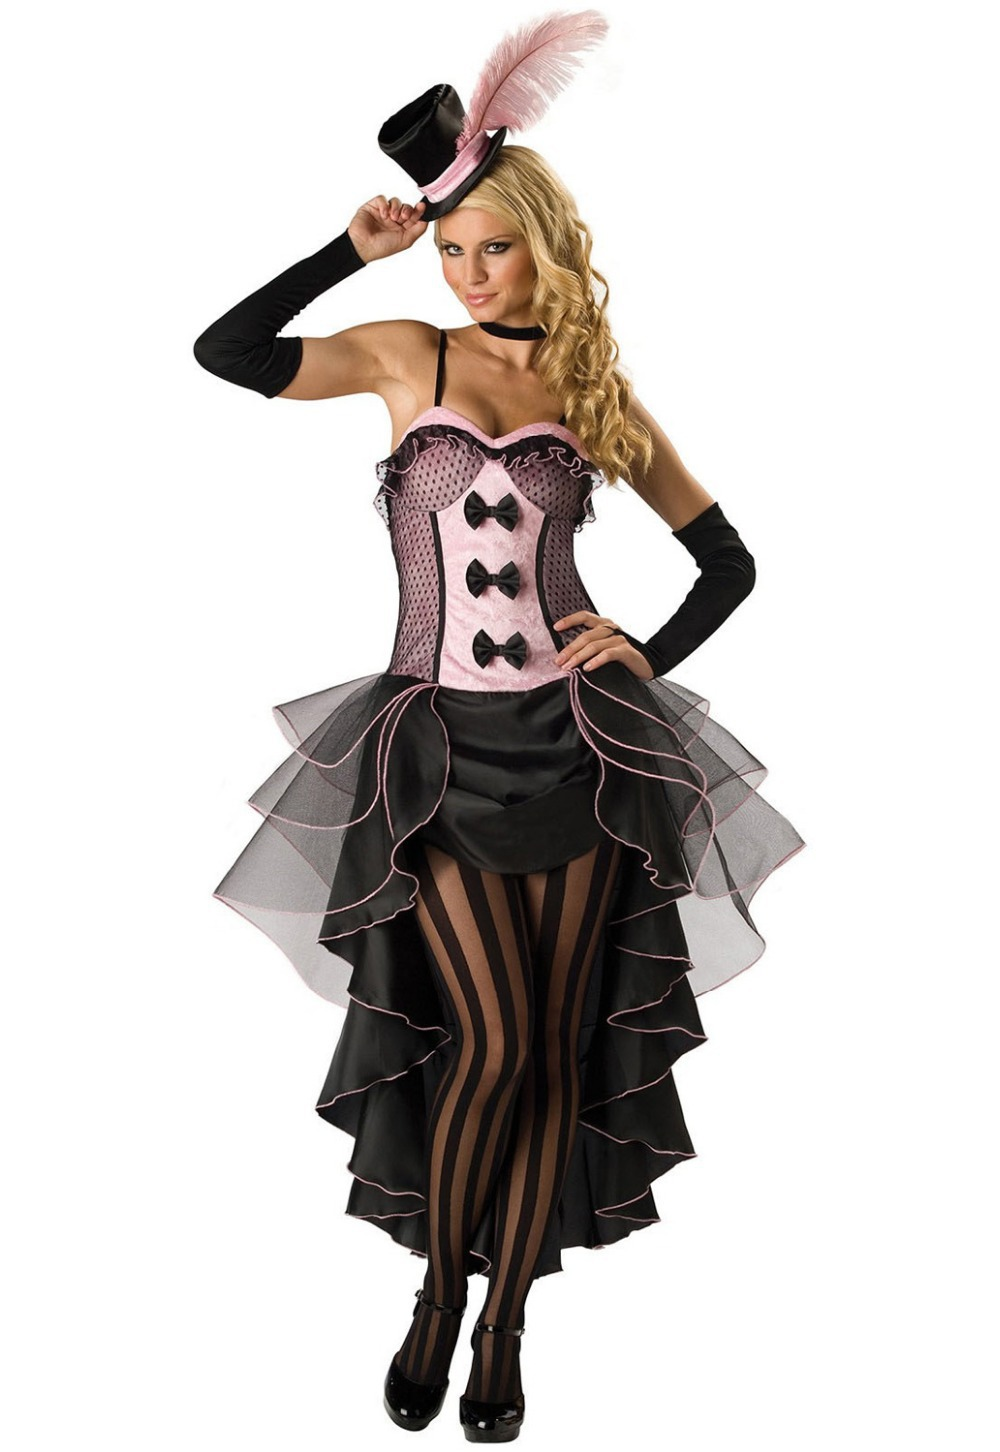 4PC/Set New Arrival Woman Halloween Costume High Quality Burlesque Beauty Costume Sexy Saloon Girl Can Can Fancy Dress 8822(China (Mainland))